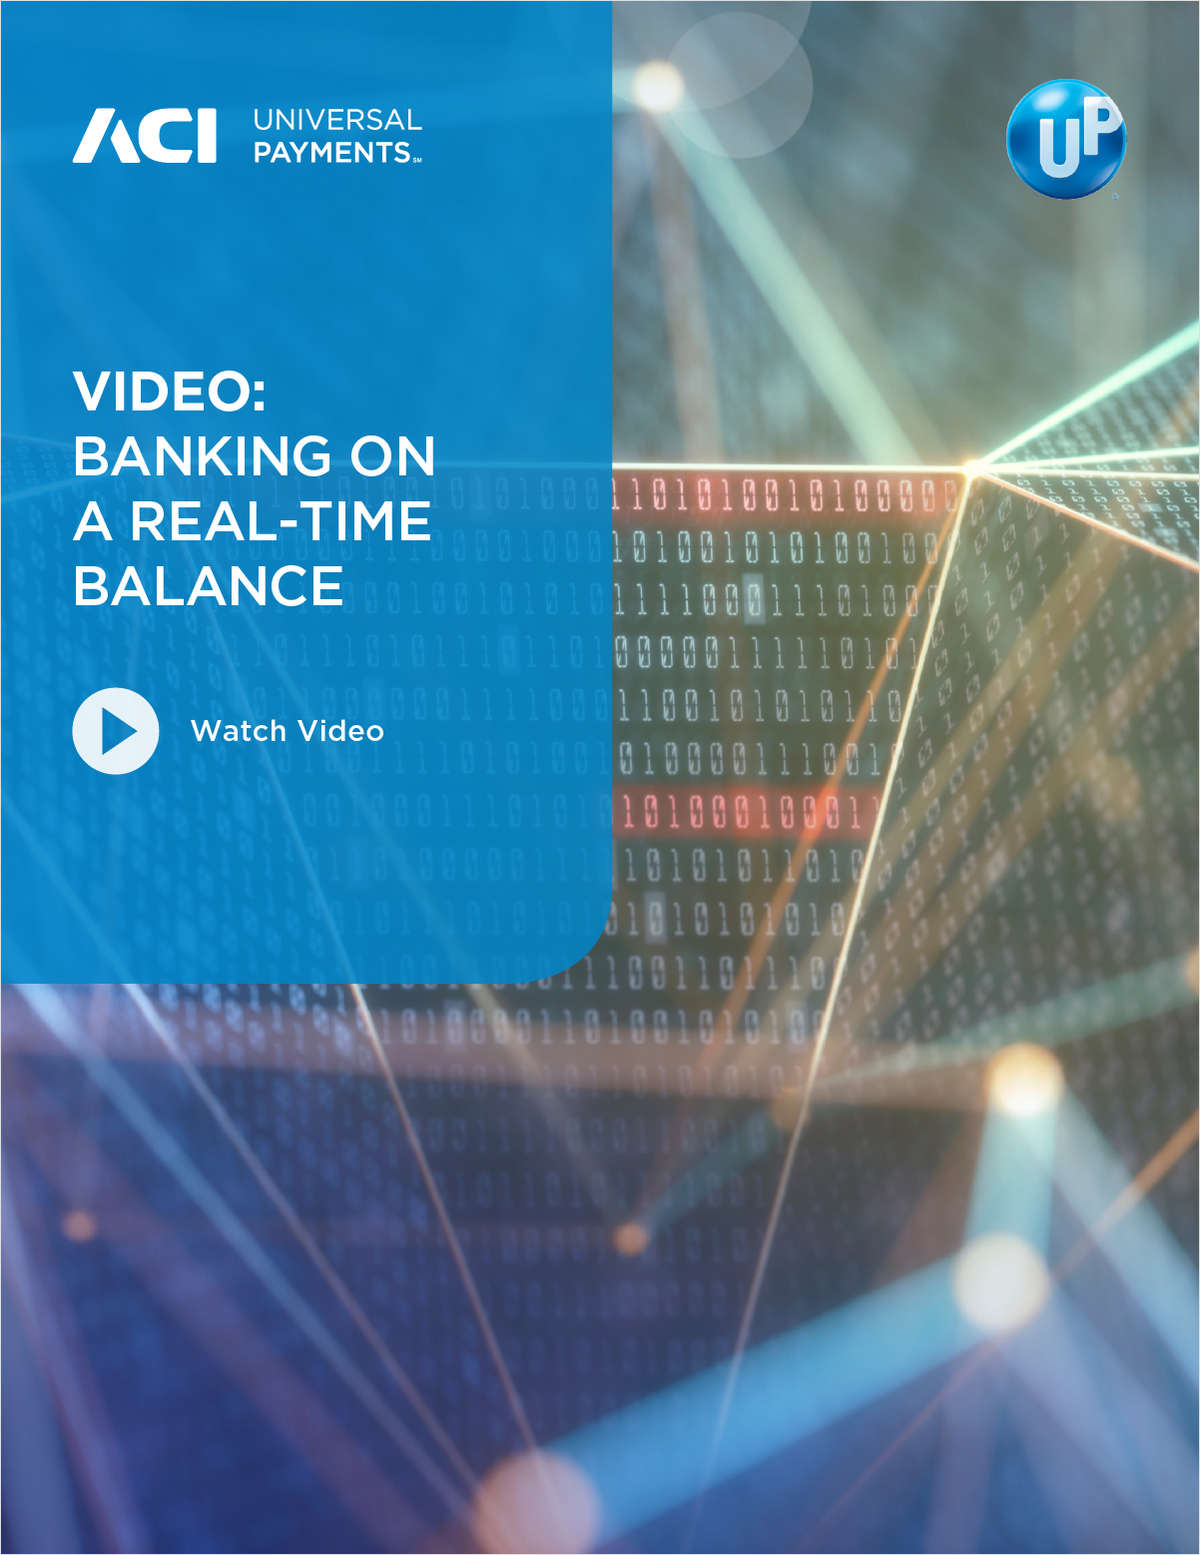 BANKING ON A REAL-TIME BALANCE SYSTEM